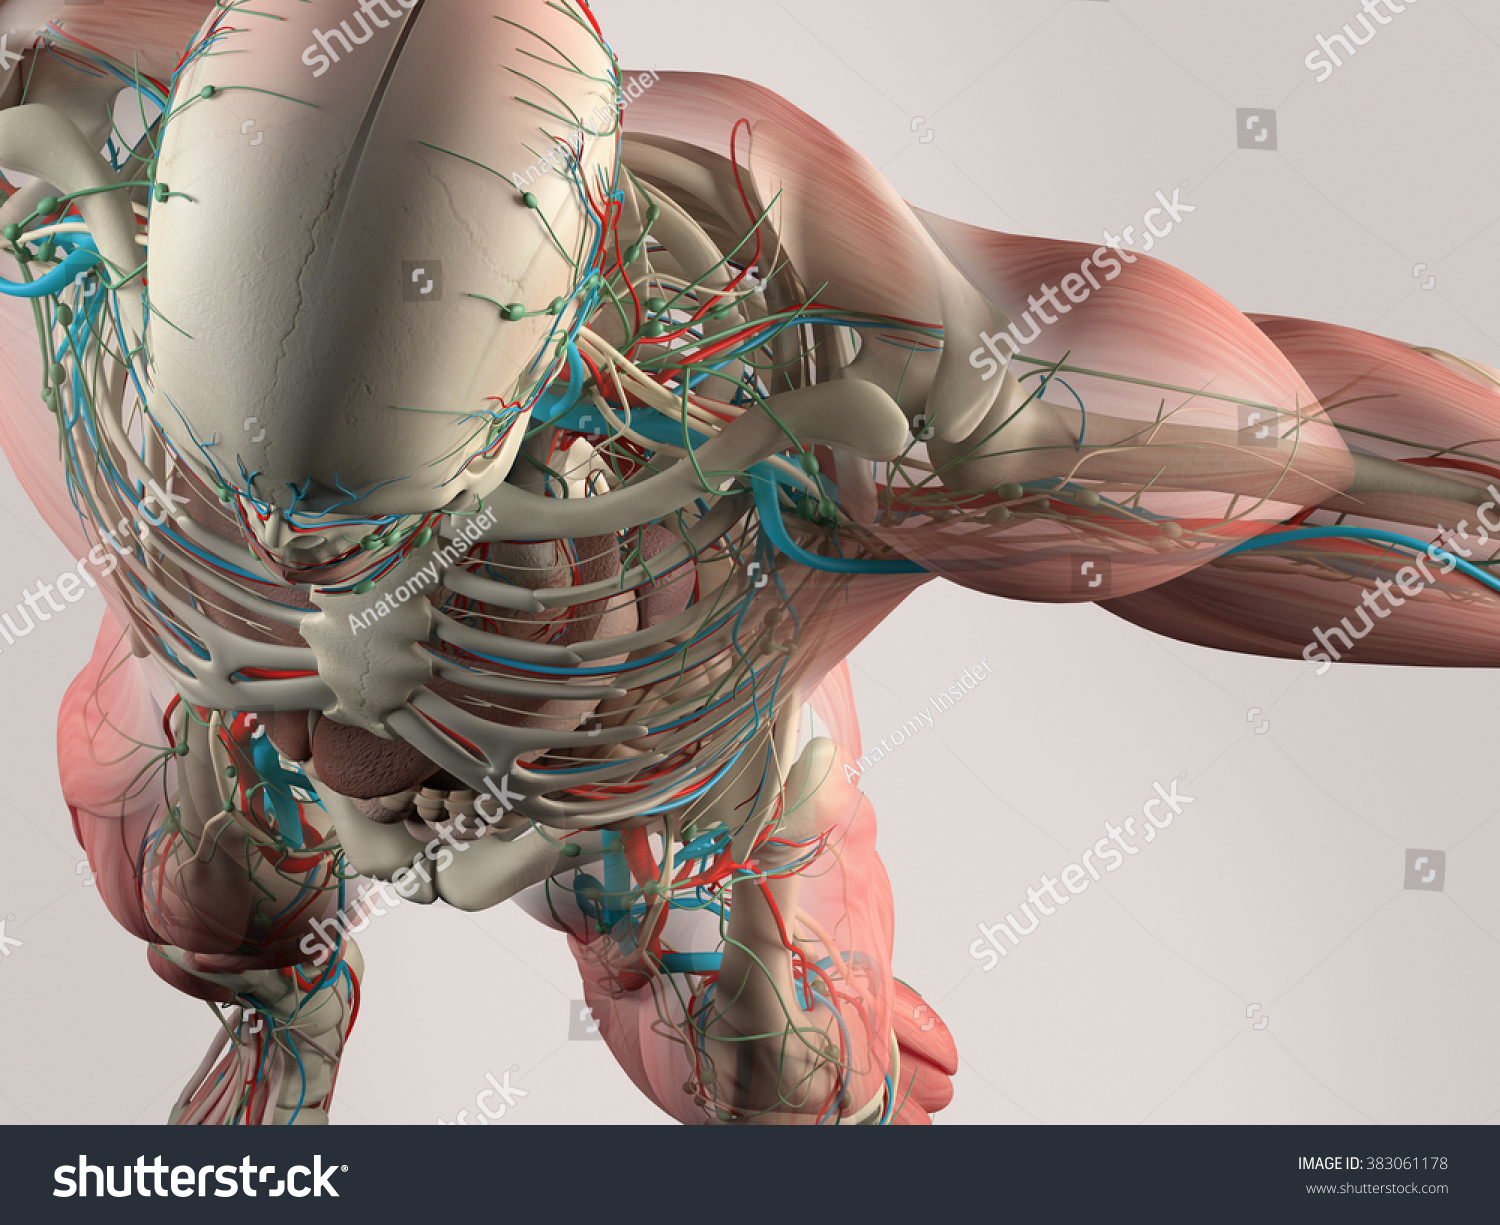 Human Anatomy Detail Skull Shoulder Bone Stock Illustration